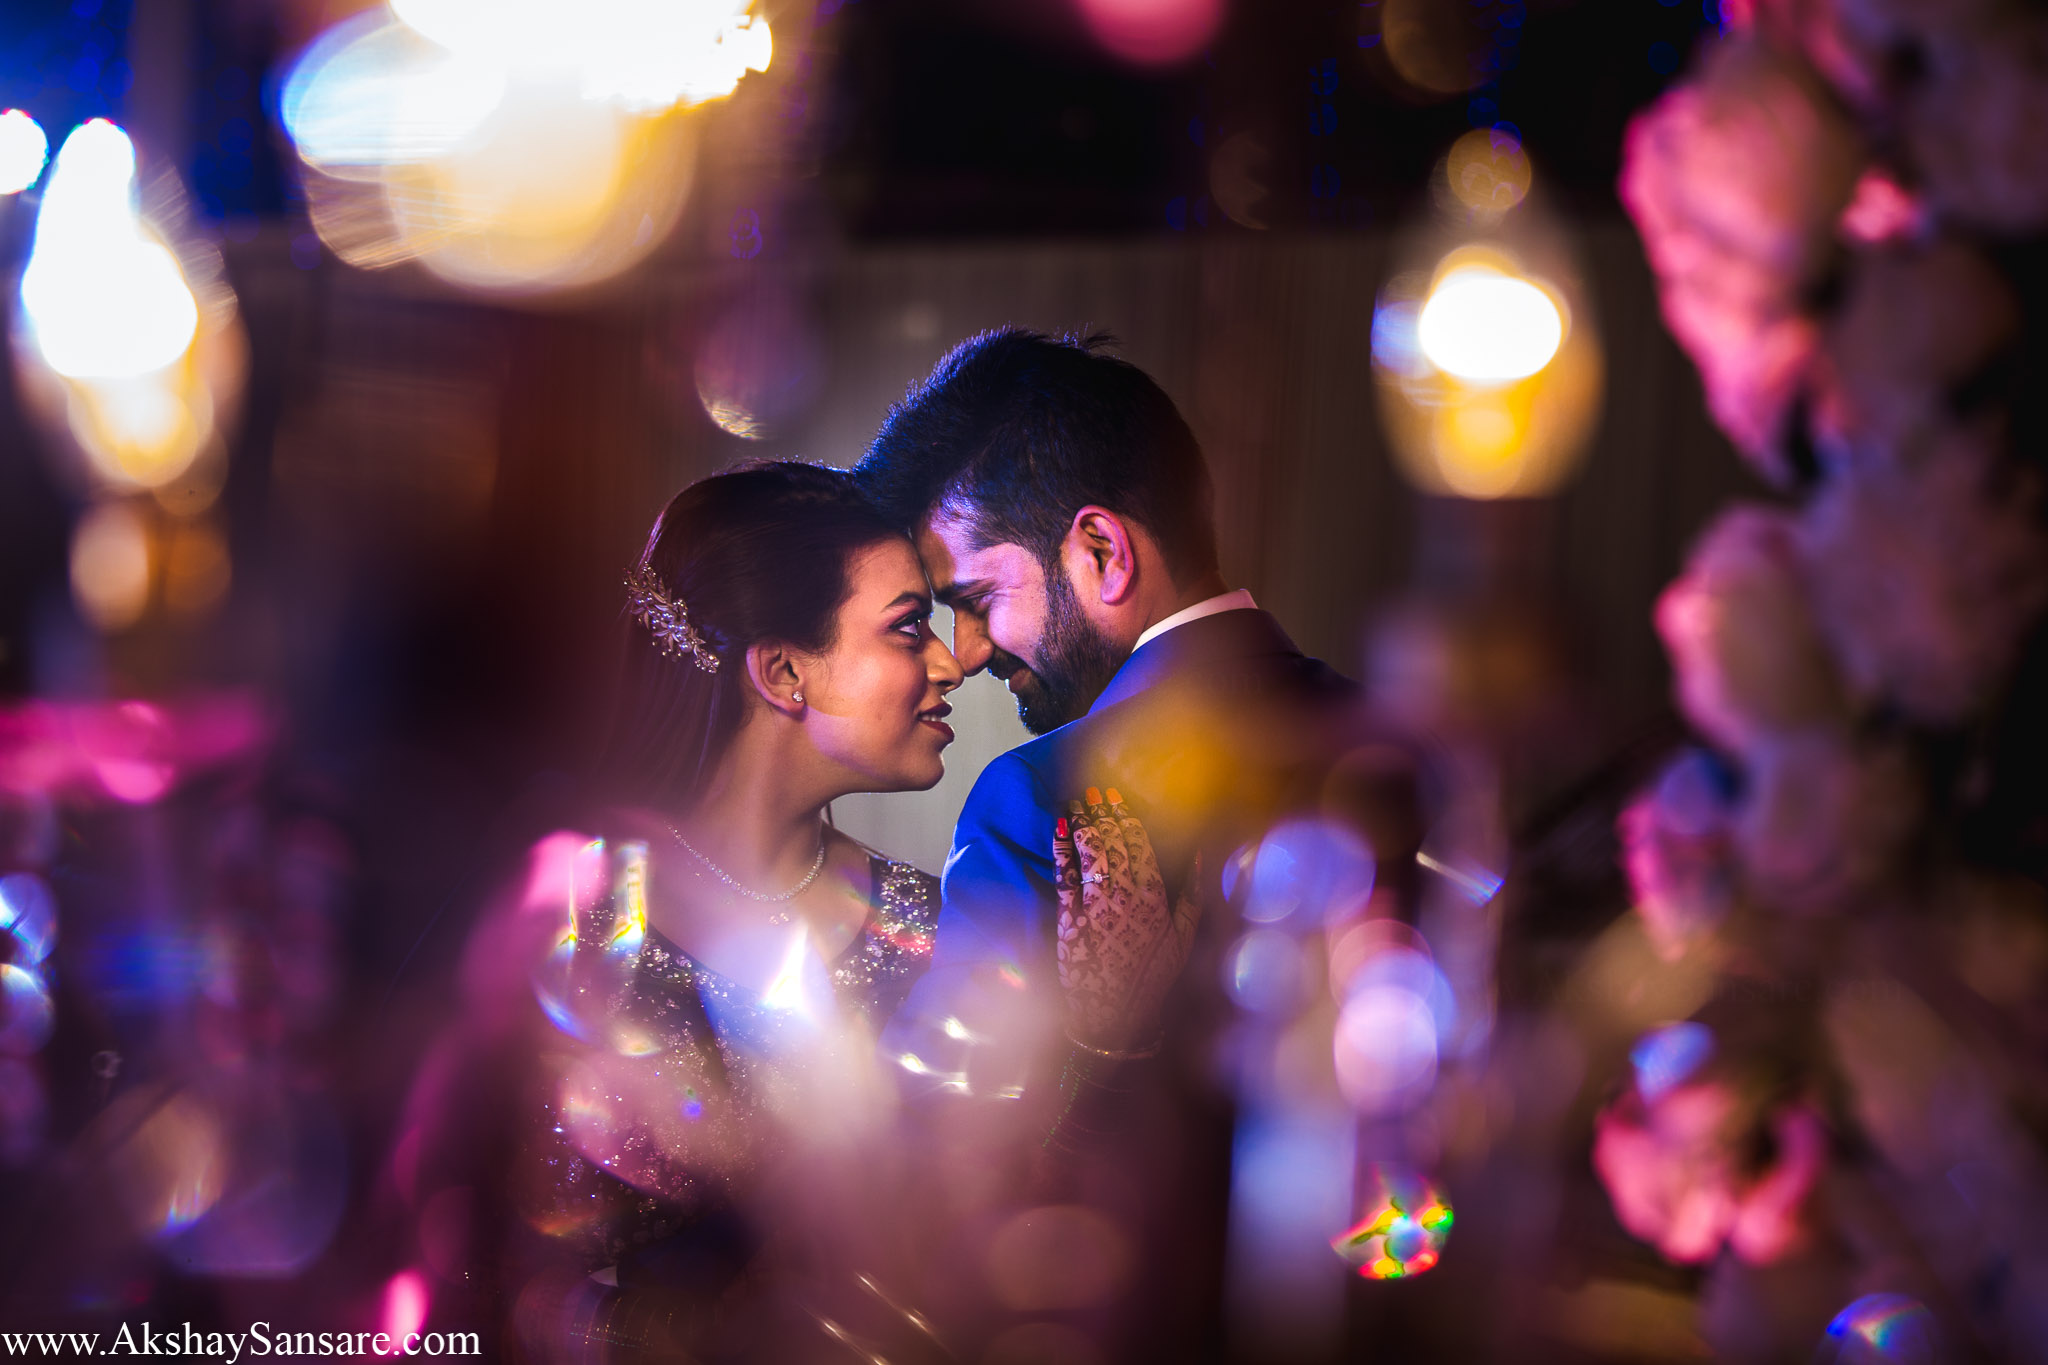 Ajay & Devika Akshay Sansare Photography Best Candid wedding photographer in mumbai india29.jpg